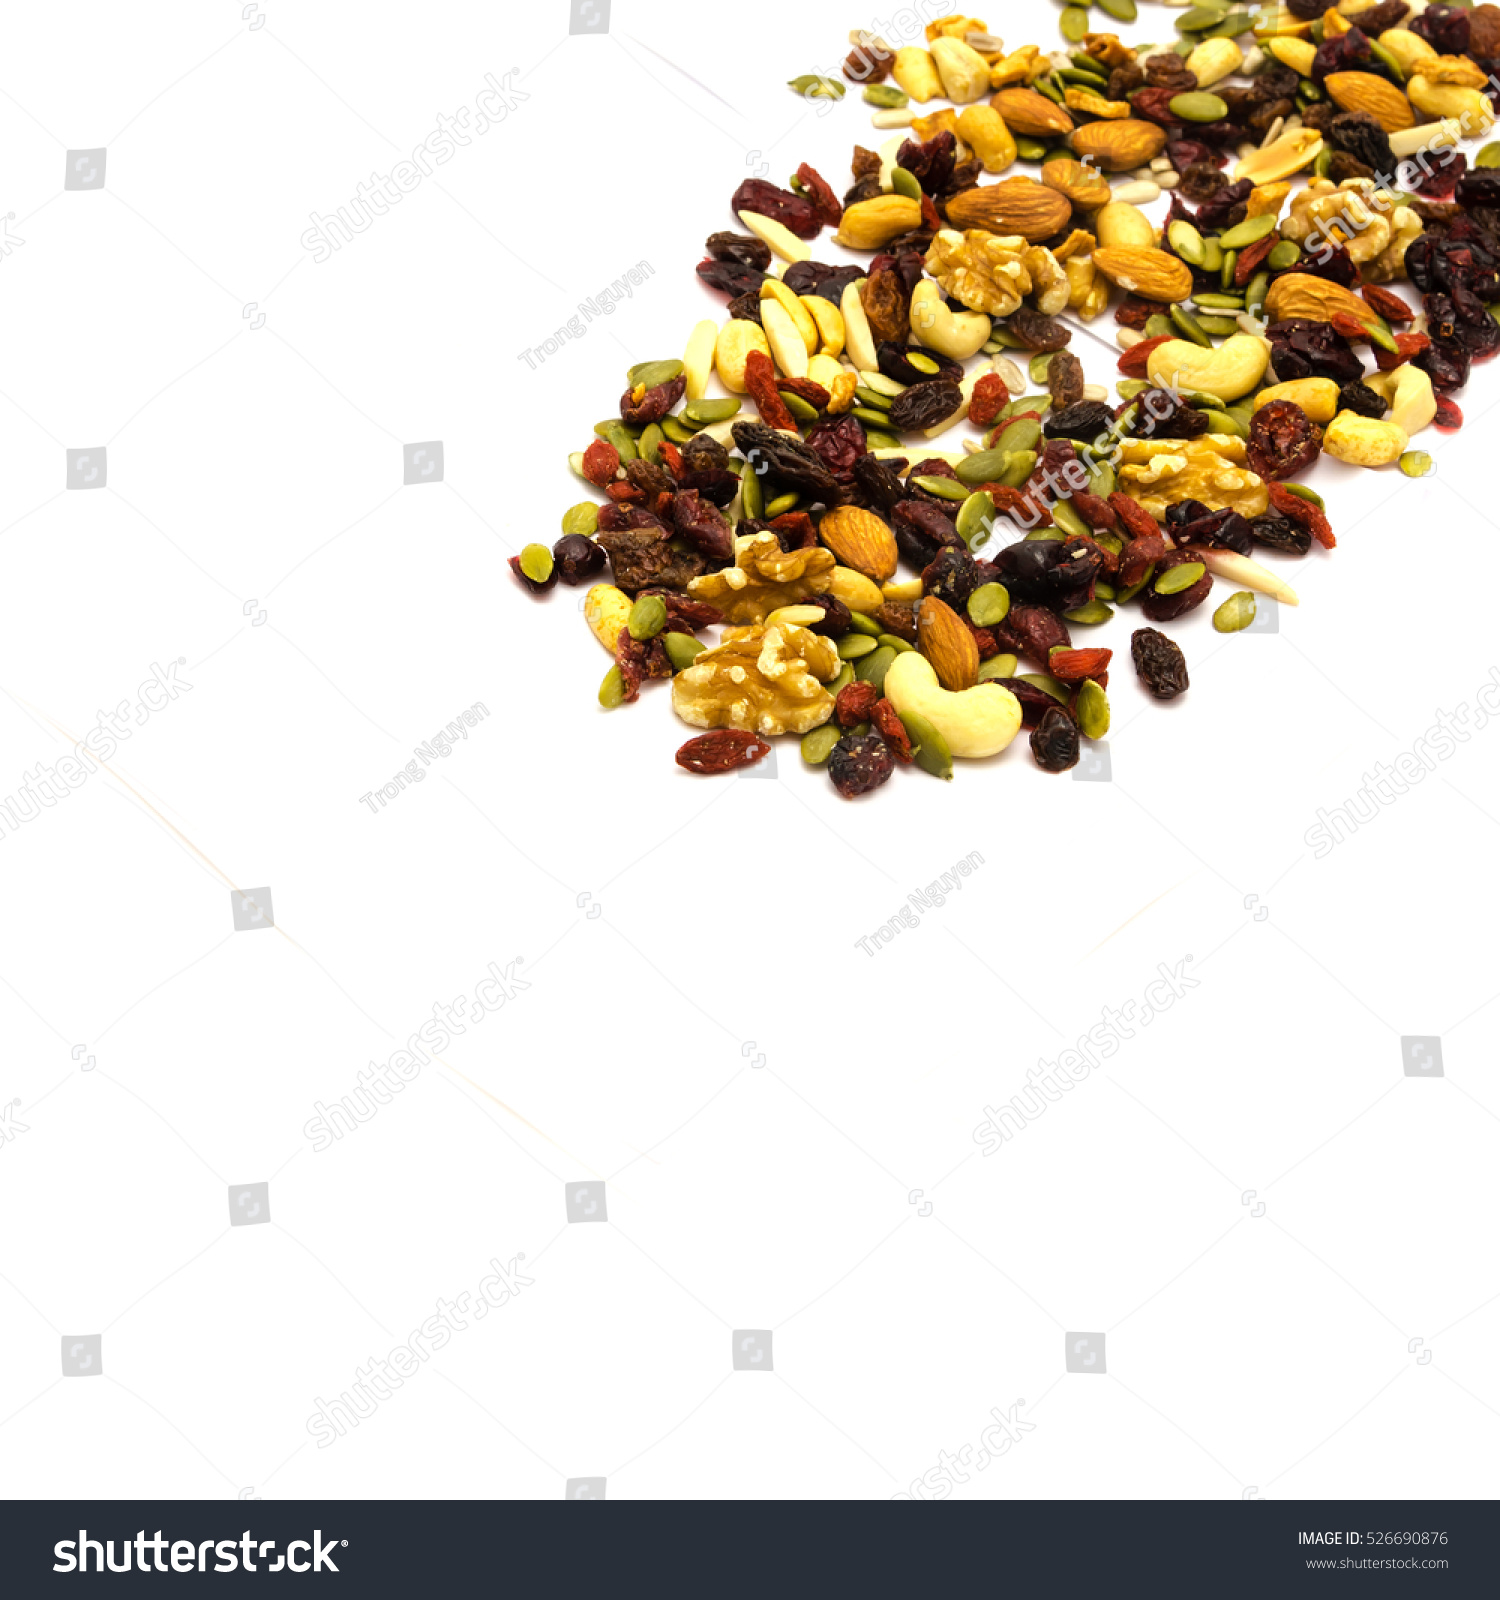 ... , cashew, raisin, goji, dried cranberries, pumpkin, sunflower seeds